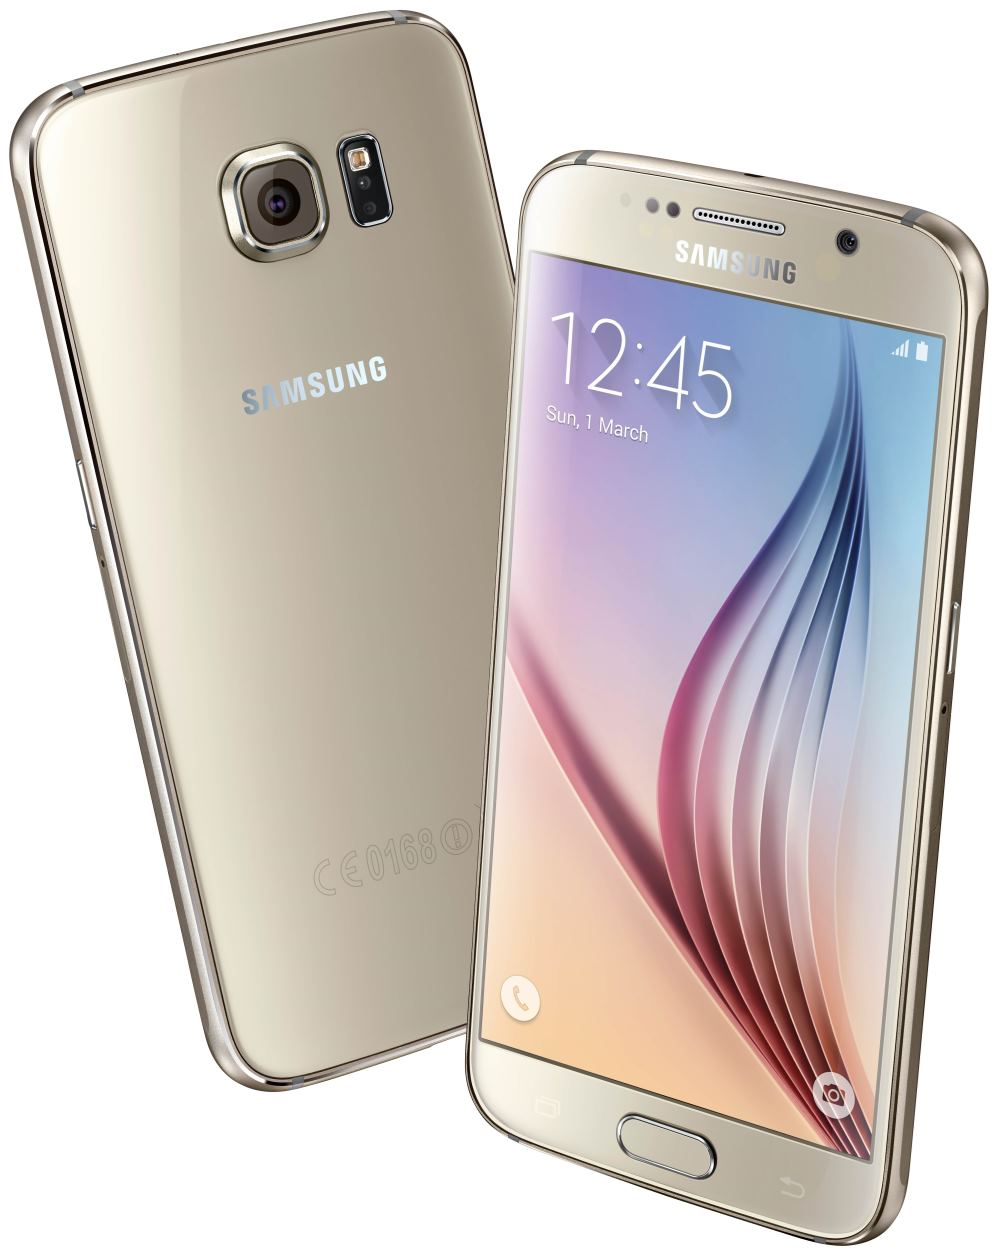 Samsung Galaxy S6 vs Note 4